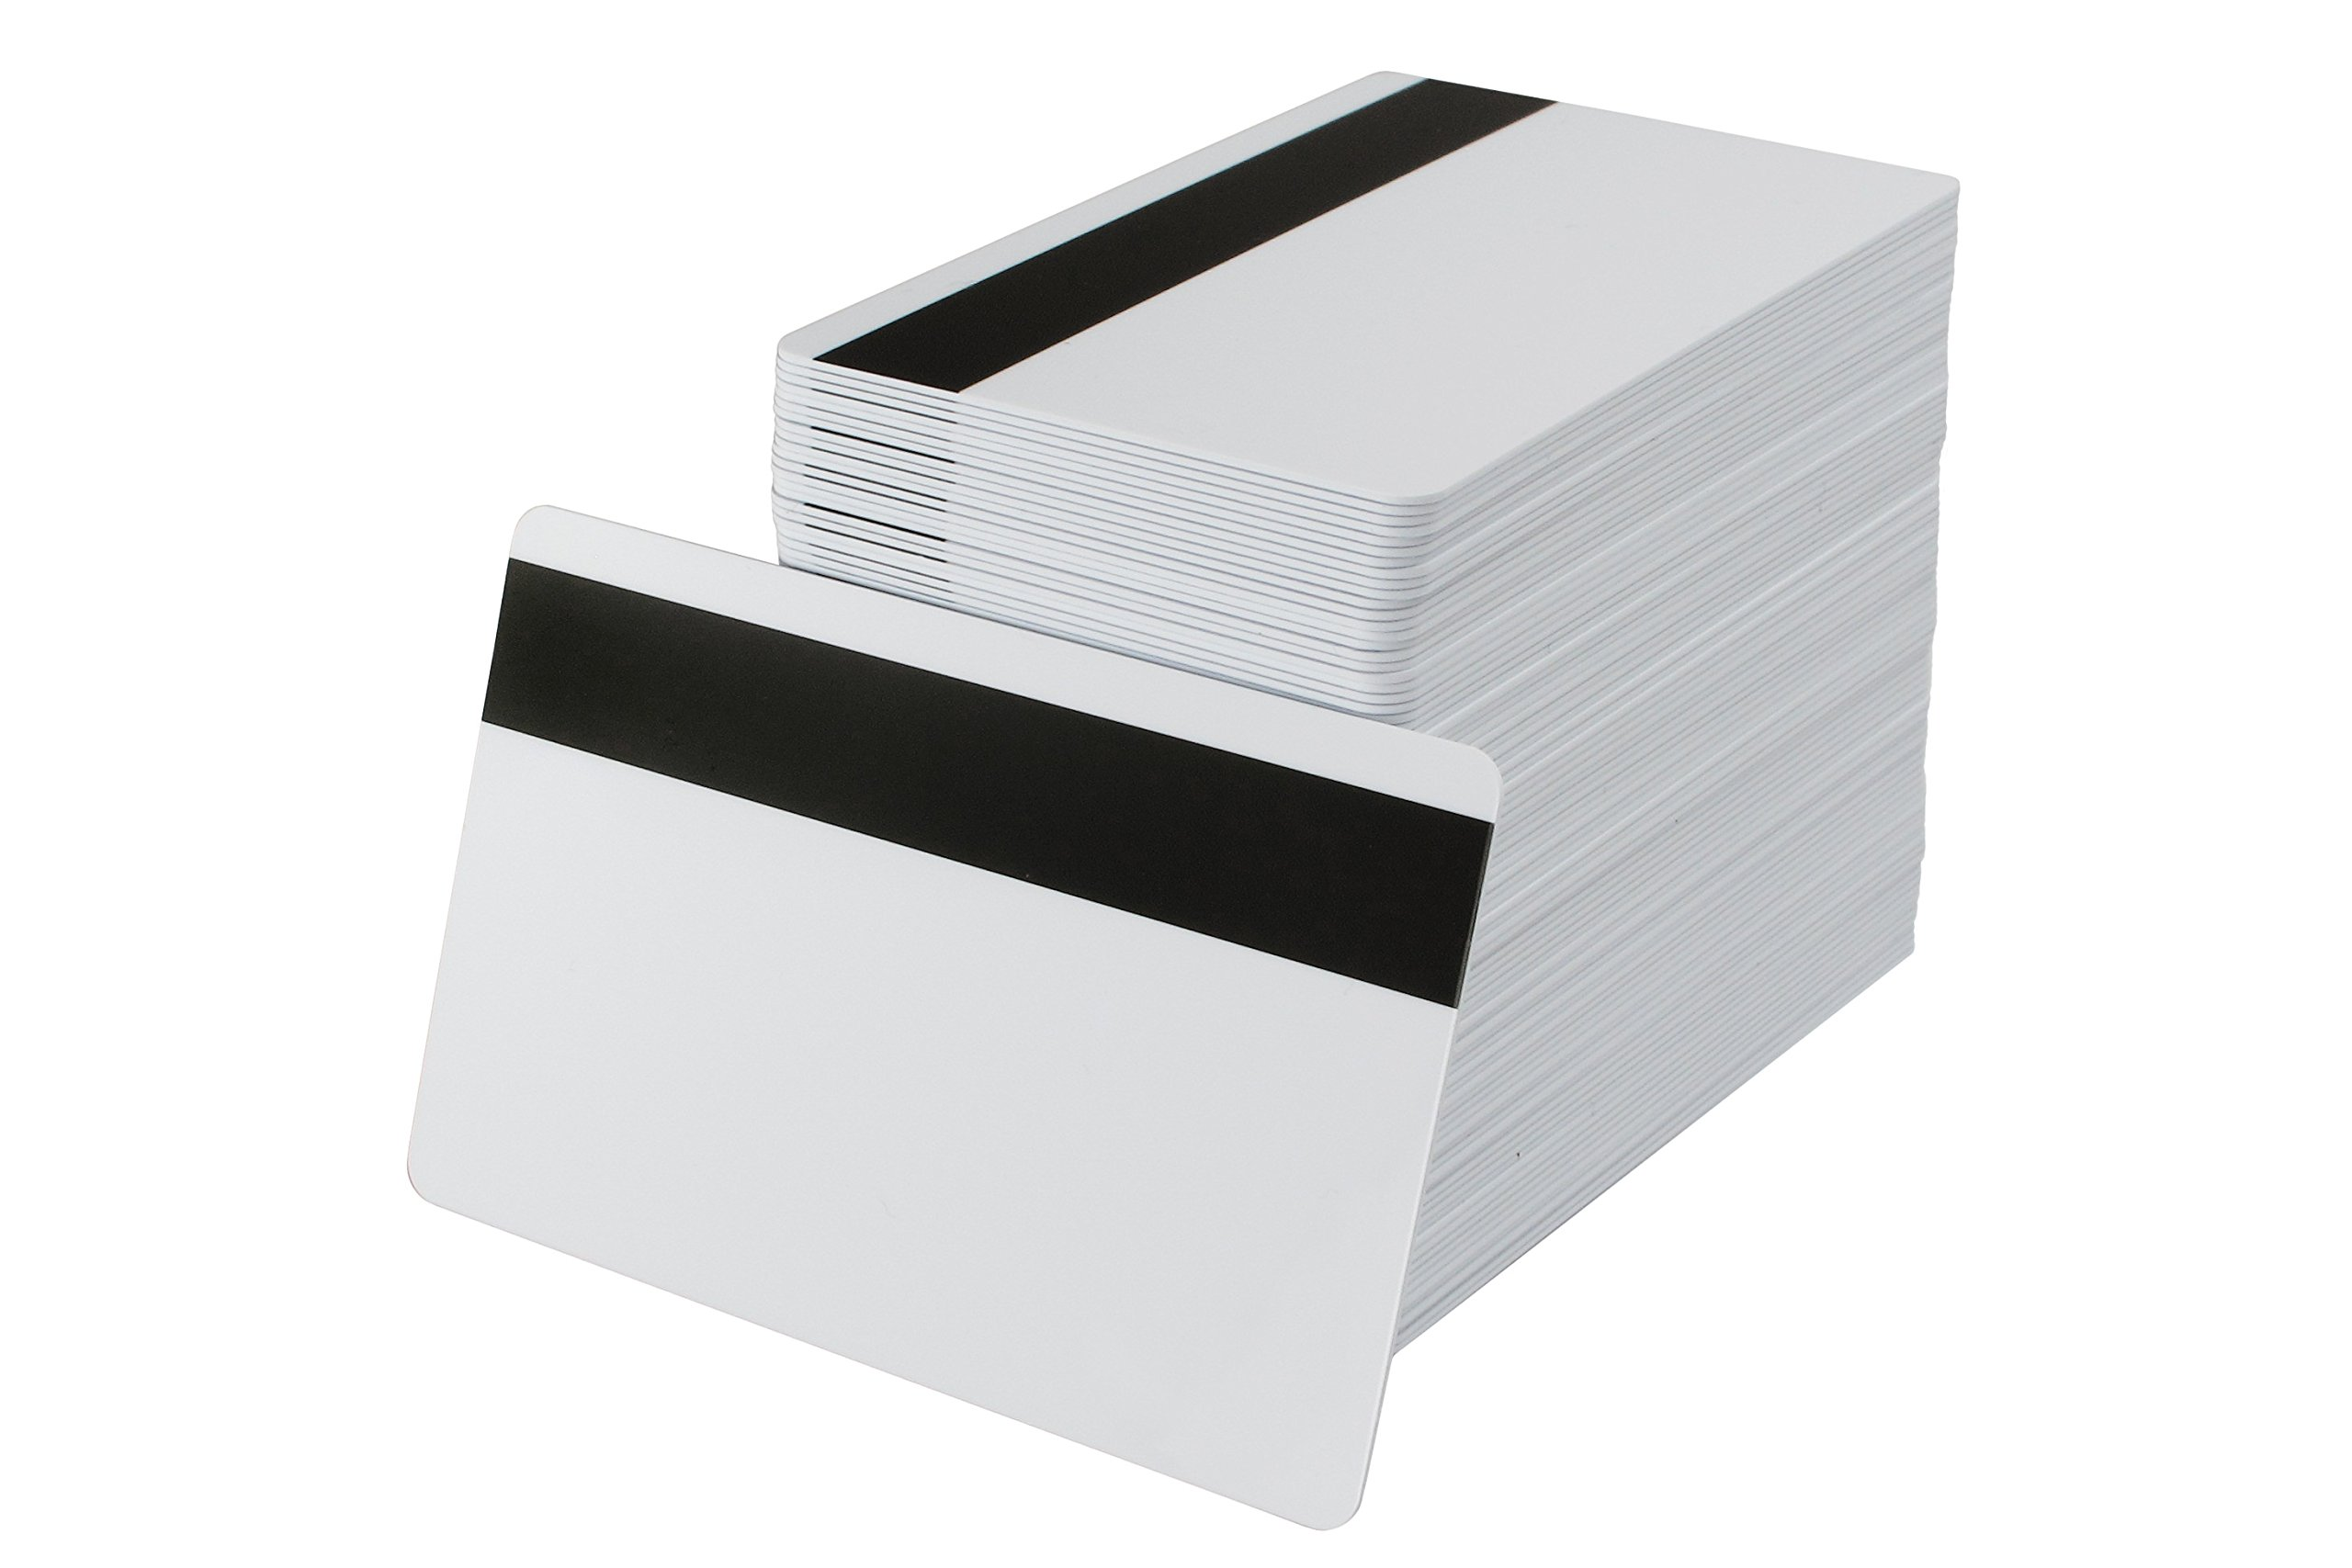 Pack of 500 White CR80 PVC Cards with Hi-Co Magnetic Stripe | 30 Mil by easyIDea